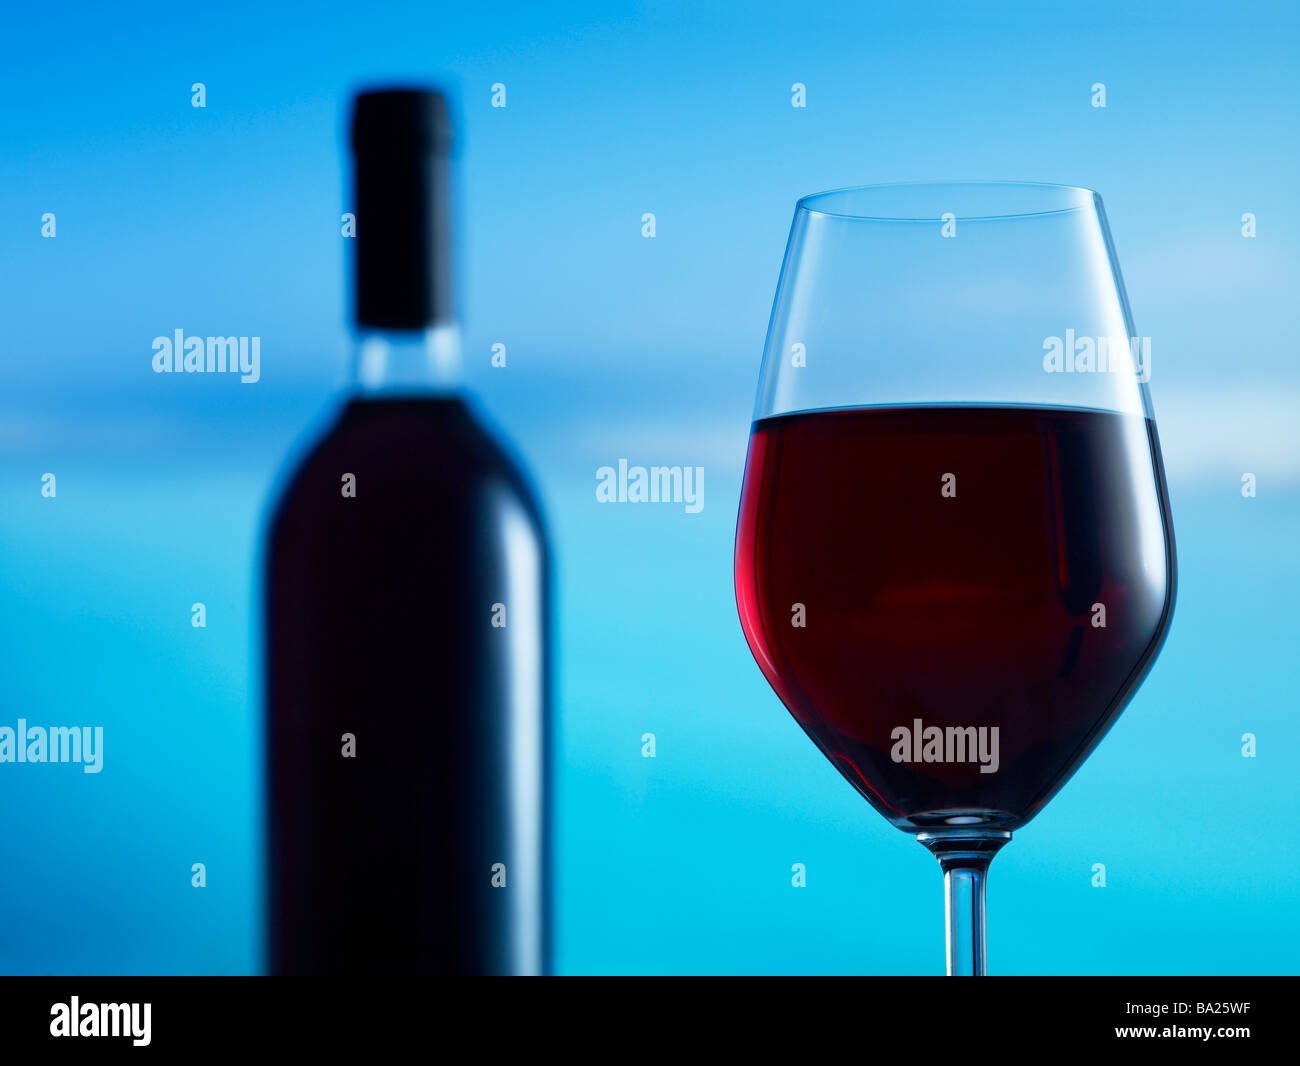 Glass of red wine with bottle in background 39MP capture - Stock Image